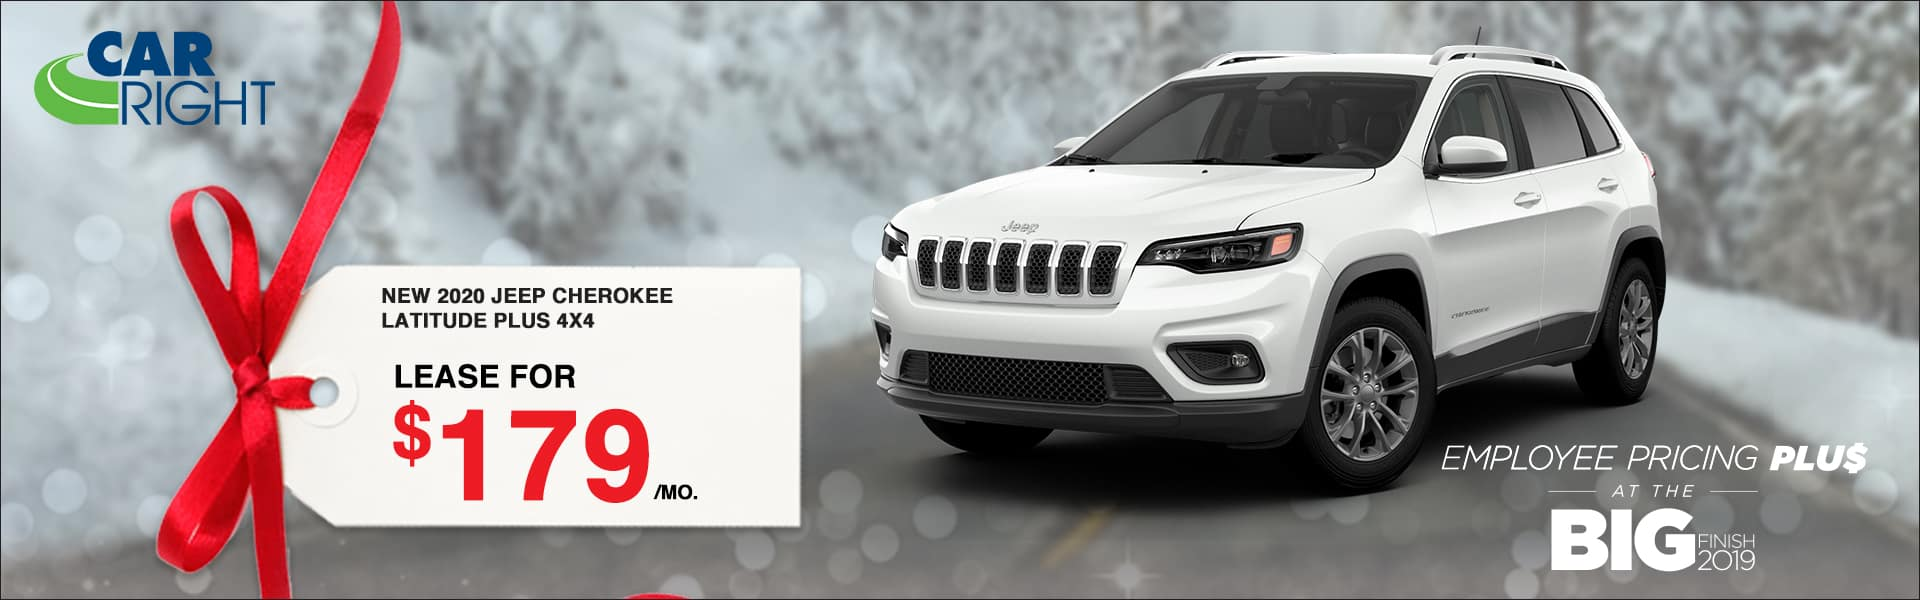 K4115_2020JEEPCHEROKEELATITUDEPLUS Big finish event employee pricing plus Chrysler dodge jeep ram carright moon township diehl automotive lease special buy now savings discount